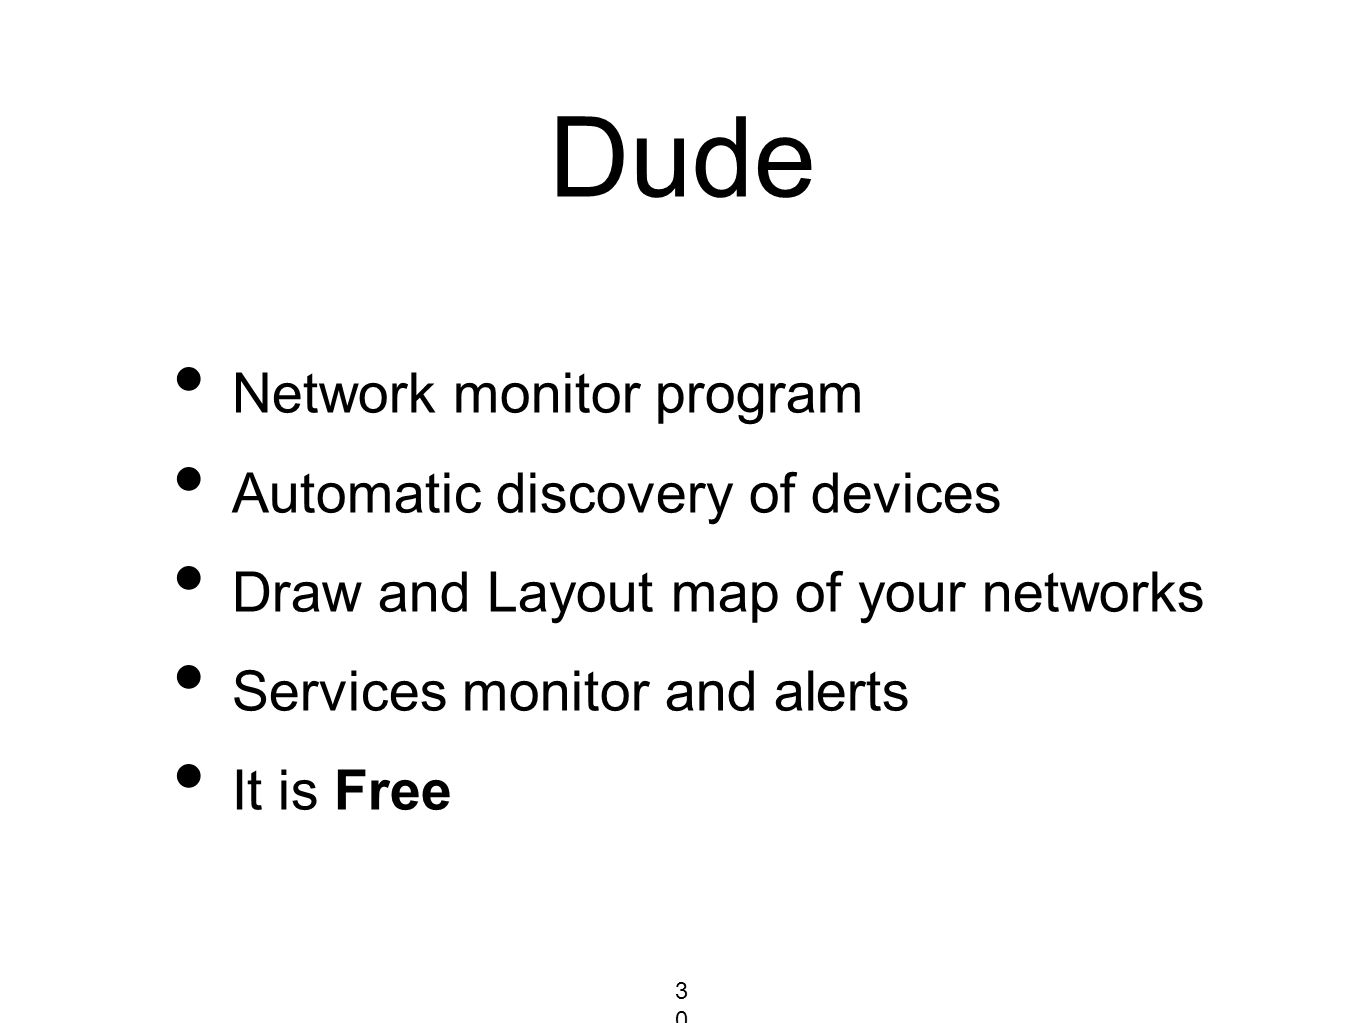 Dude Network monitor program Automatic discovery of devices Draw and Layout map of your networks Services monitor and alerts It is Free 304304304